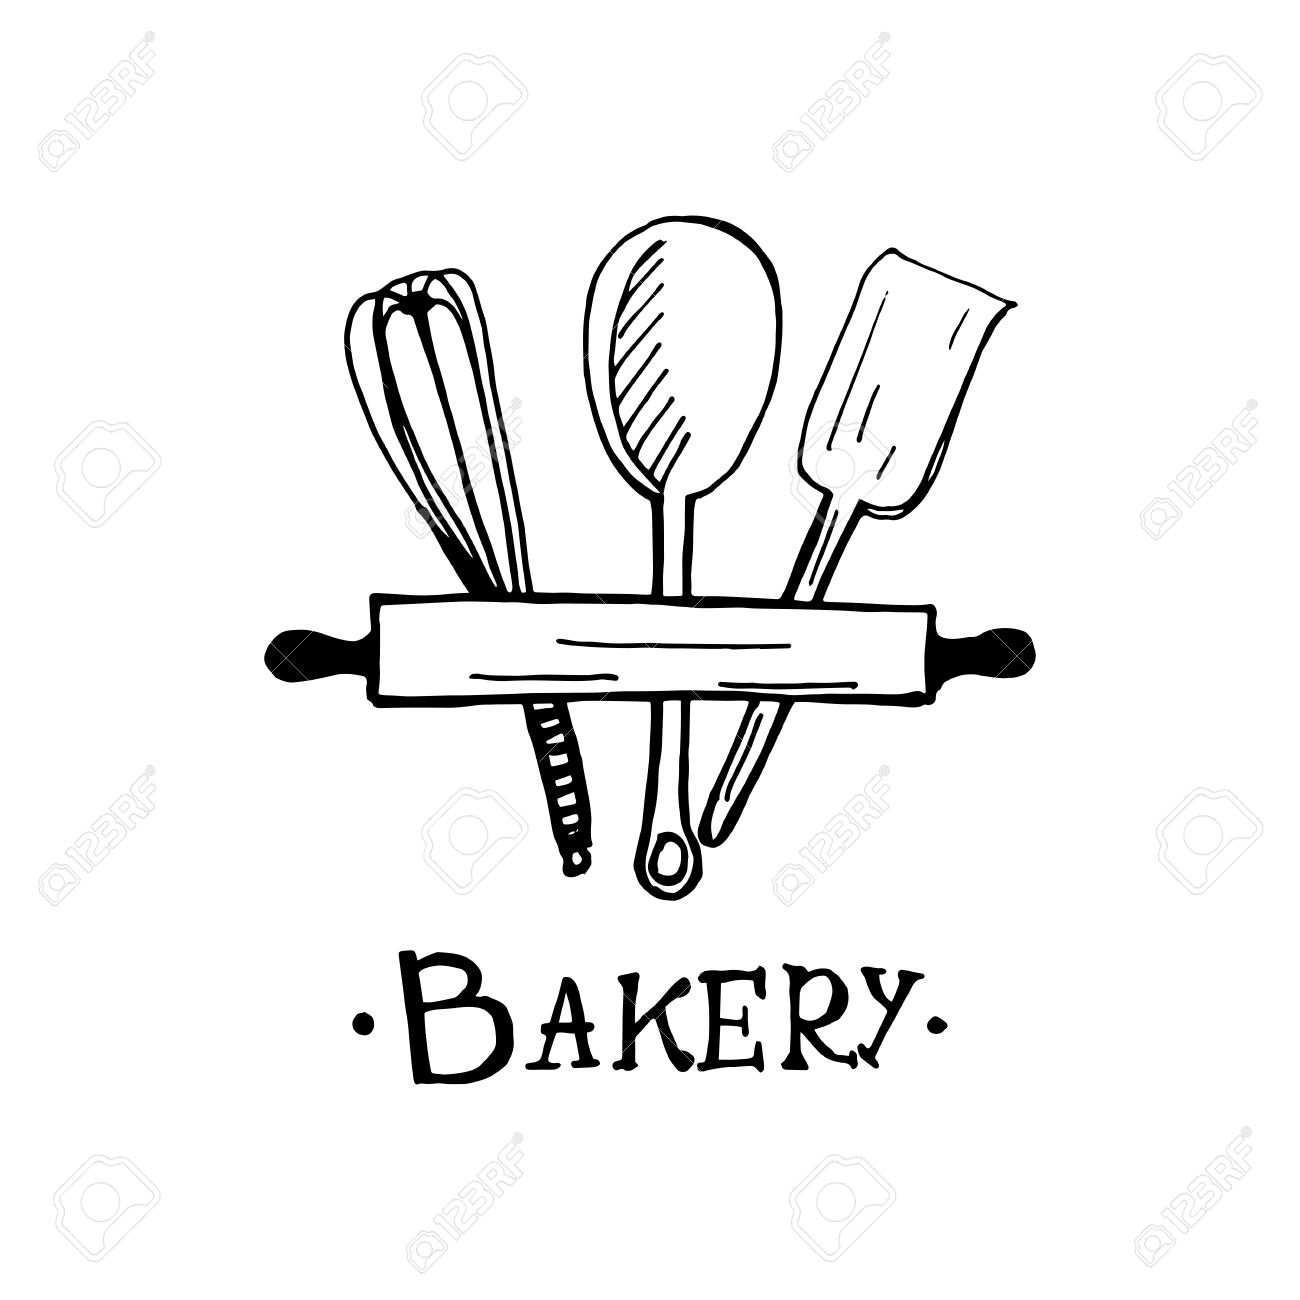 Bakery Logo Design An Idea For Cafe Bakeshop Maffin Shop Royalty Free Cliparts Vectors And Stock Illustration Image 82741506